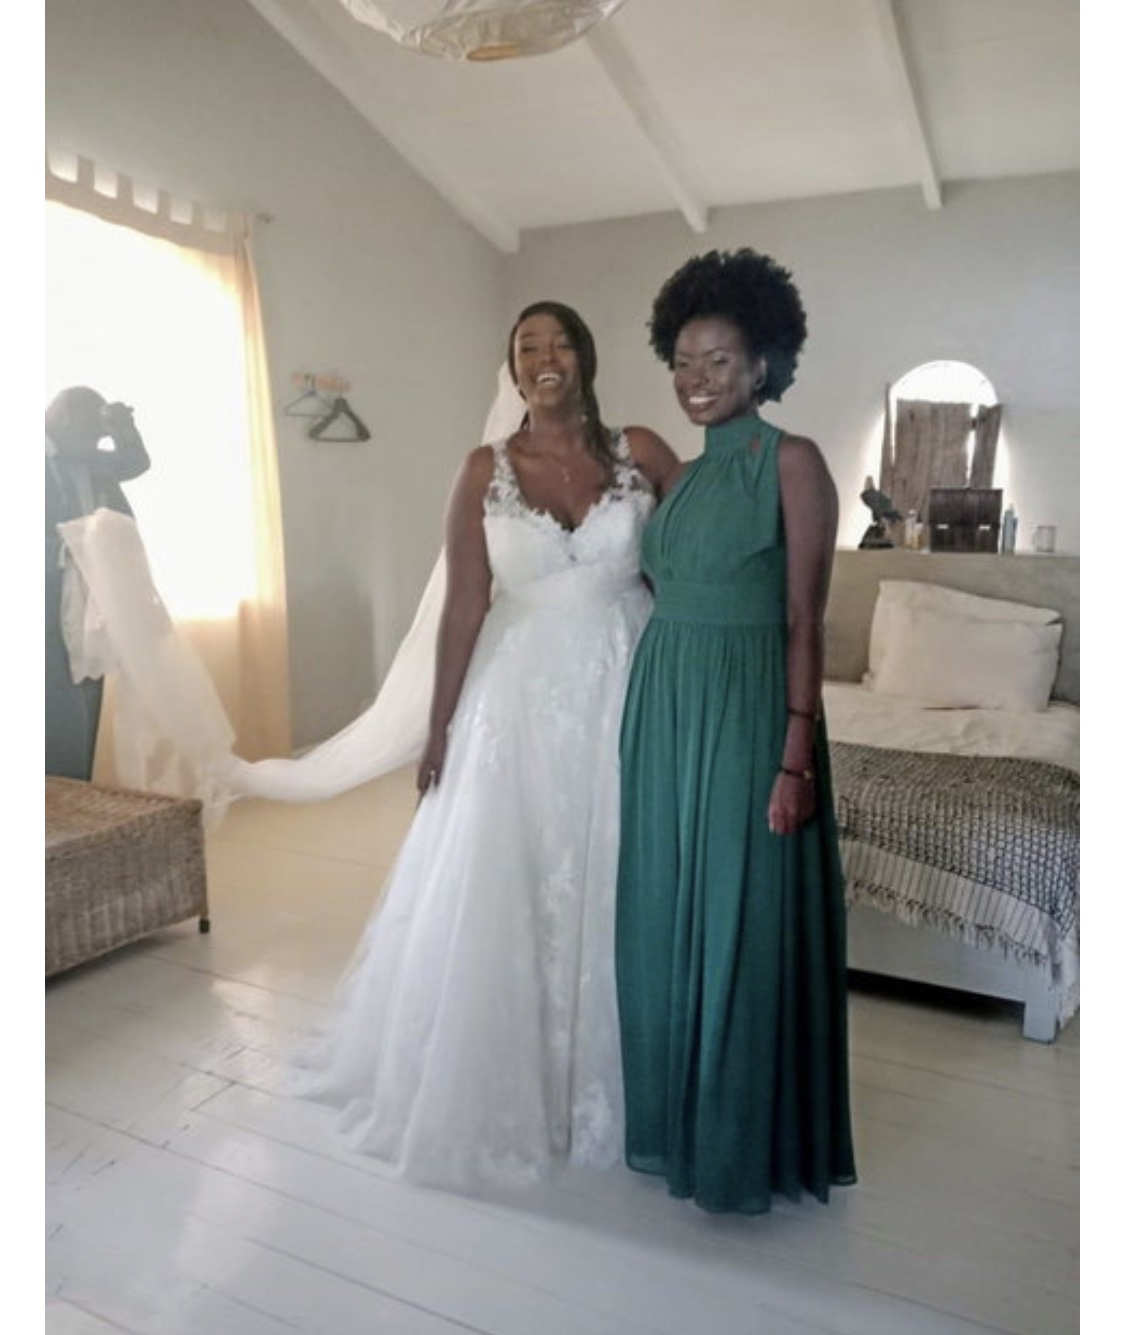 Elani's Maureen Kunga weds the love of her life in a posh private wedding